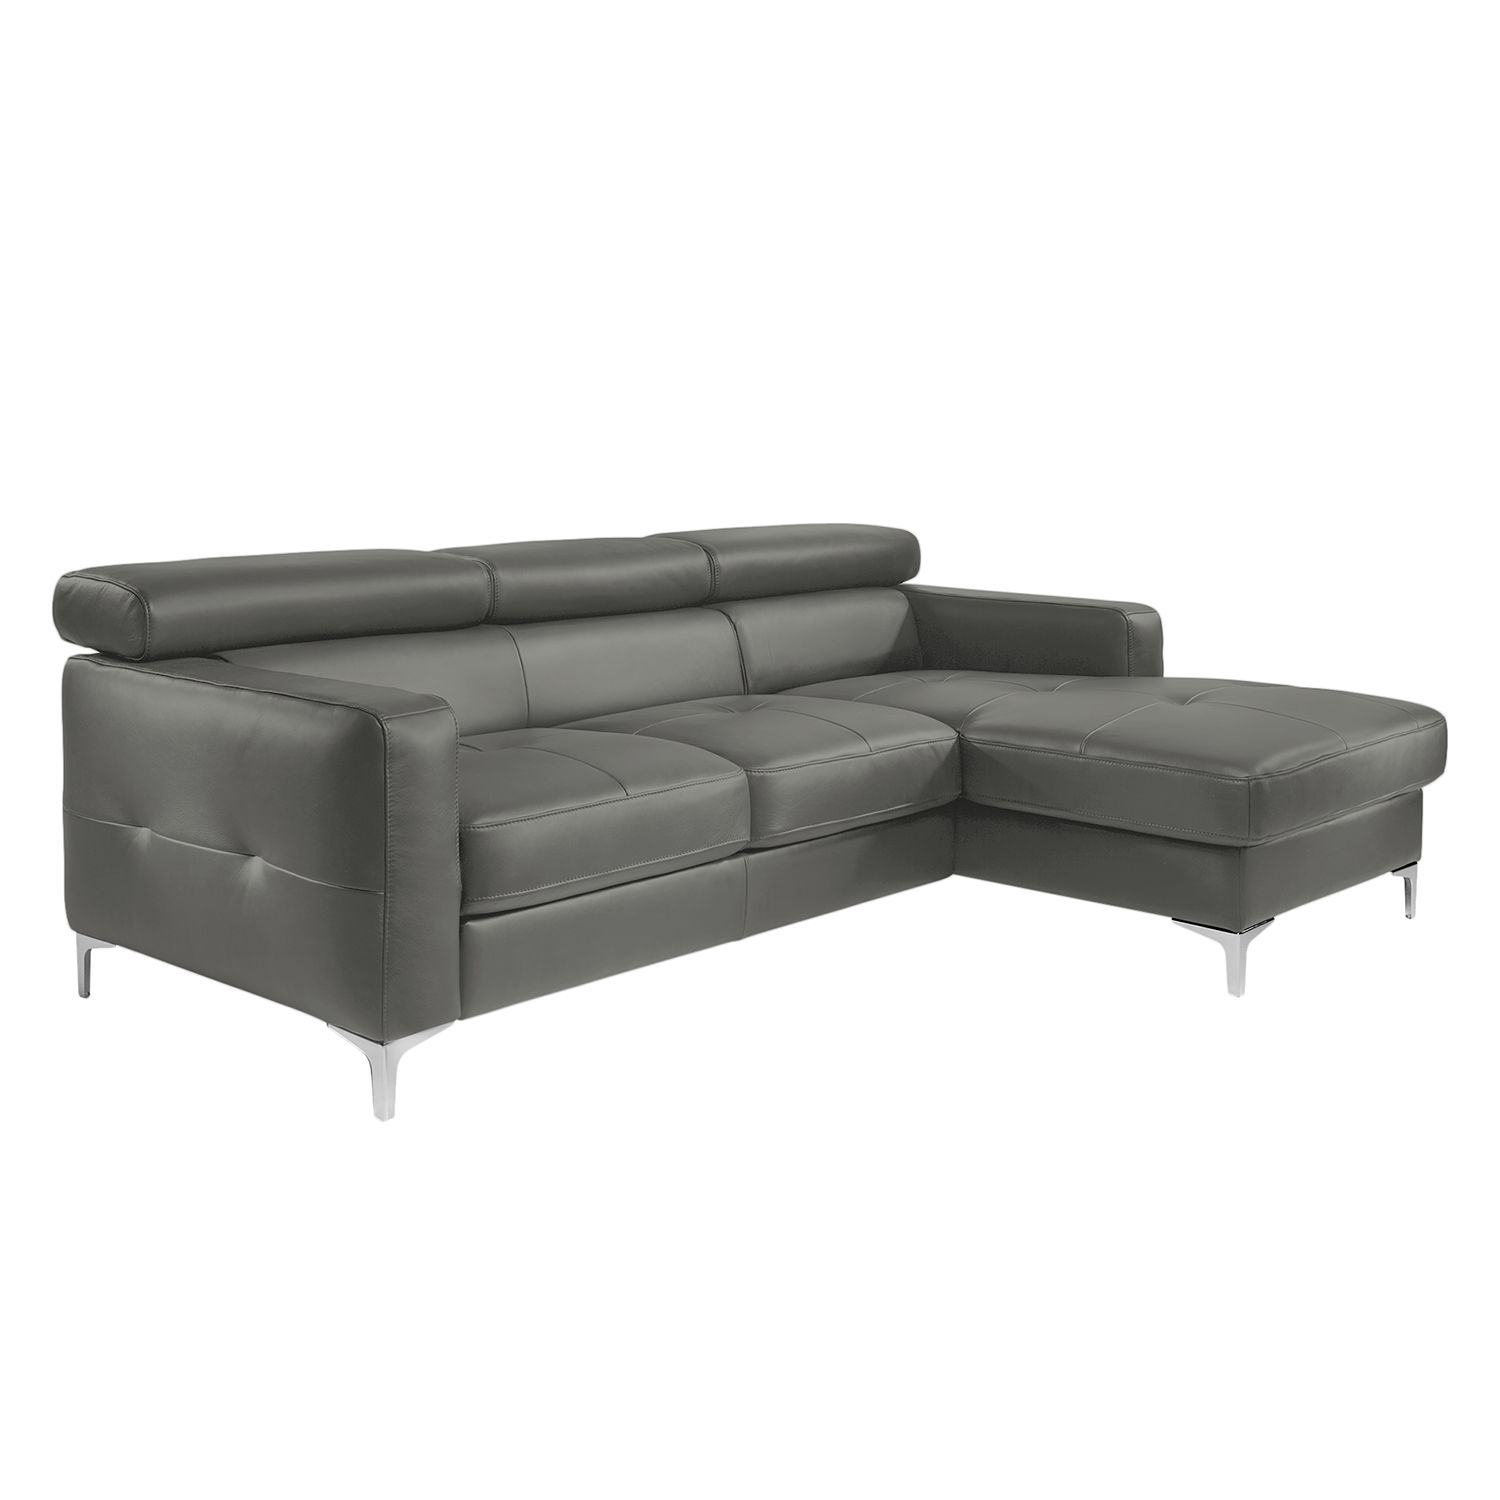 ecksofa mit schlaffunktion panama. Black Bedroom Furniture Sets. Home Design Ideas